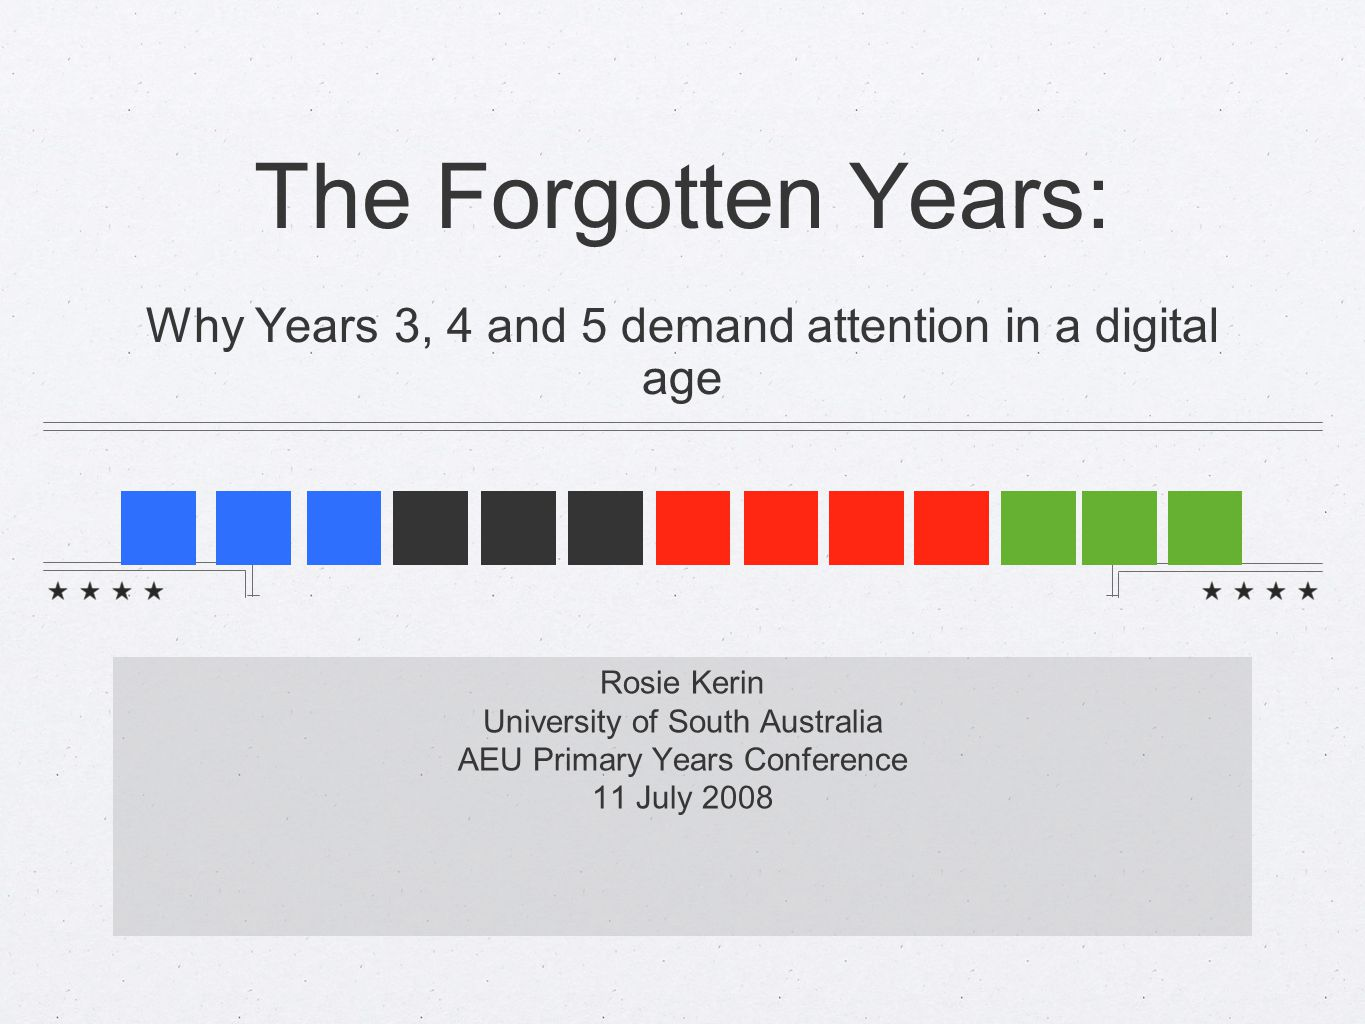 The Forgotten Years: Why Years 3, 4 and 5 demand attention in a digital age Rosie Kerin University of South Australia AEU Primary Years Conference 11 July 2008